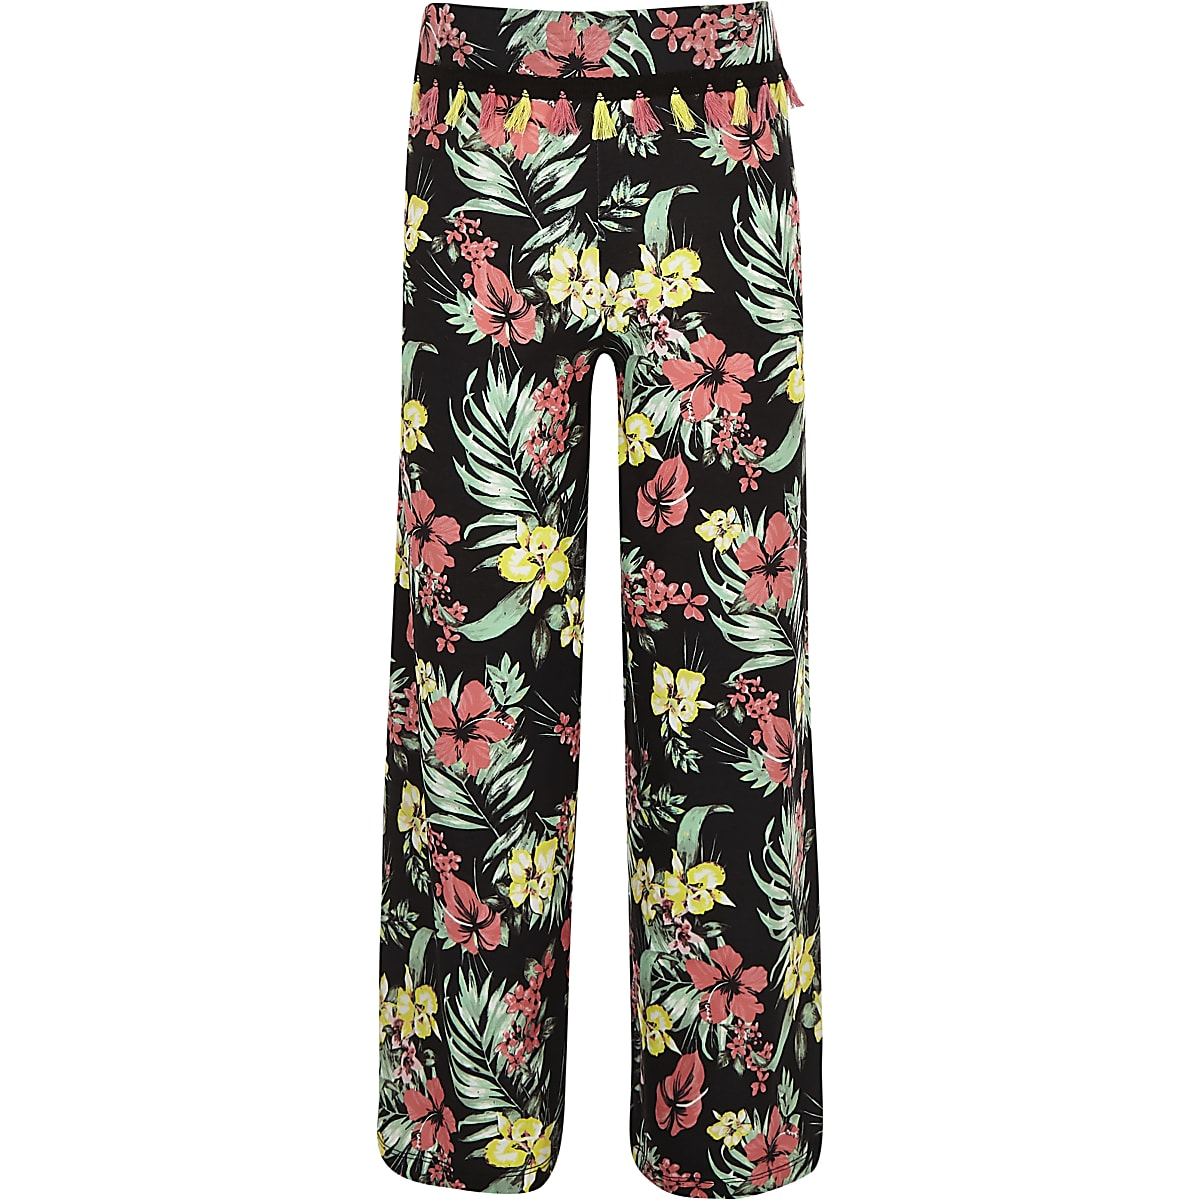 Girls black floral wide leg pants